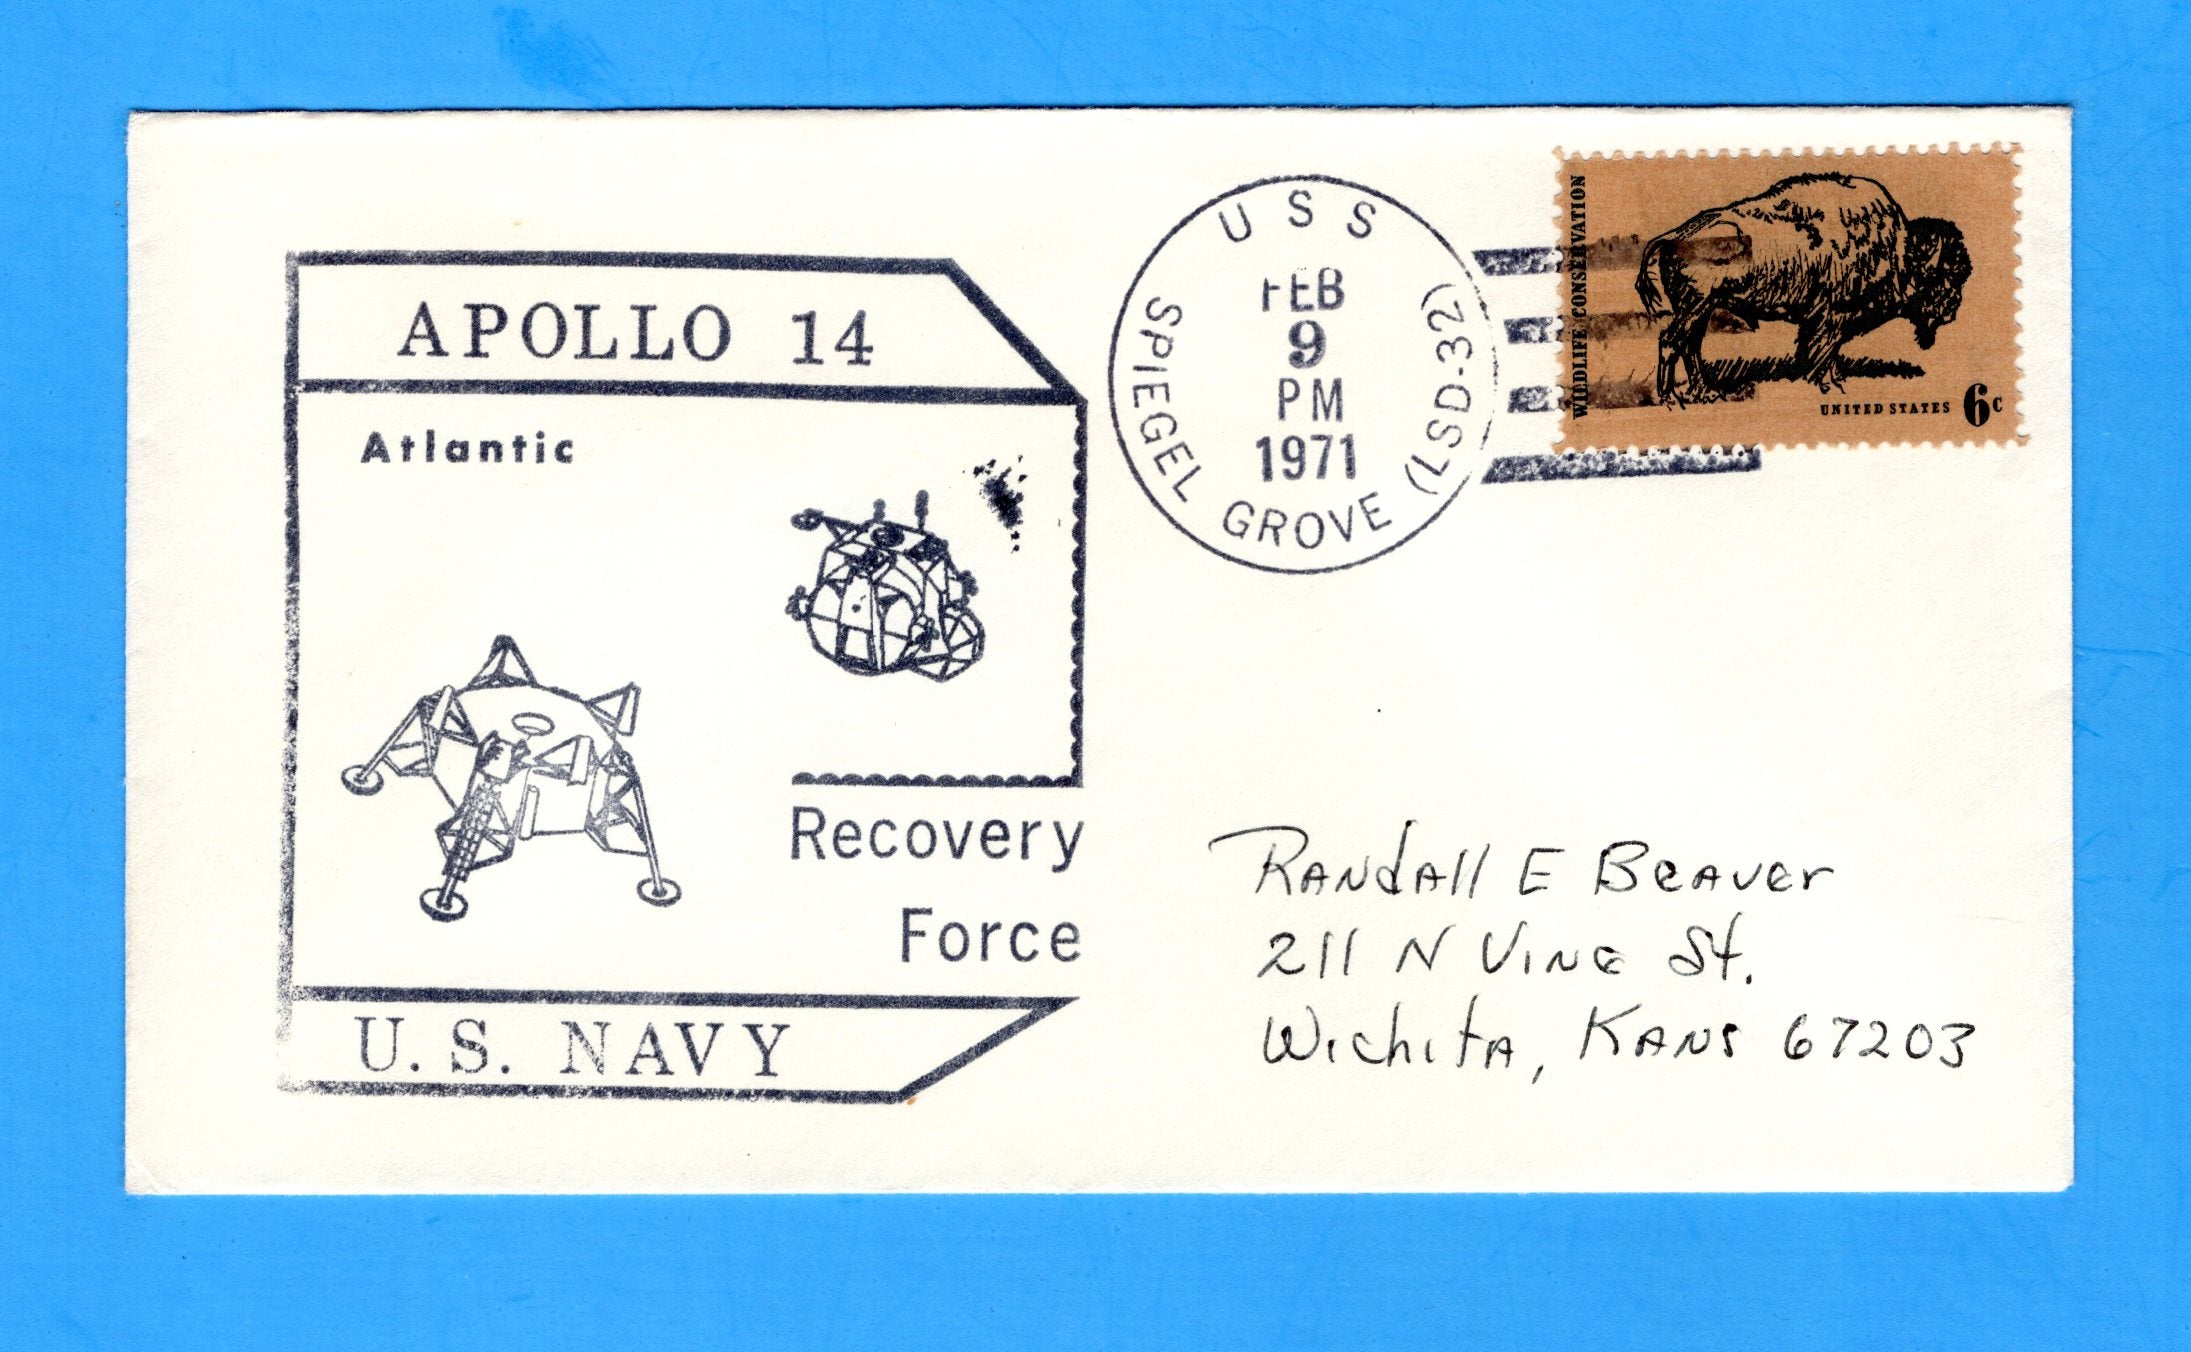 USS Spiegel Grove LSD-32 Apollo 14 Recovery Force Atlantic February 9, 1971